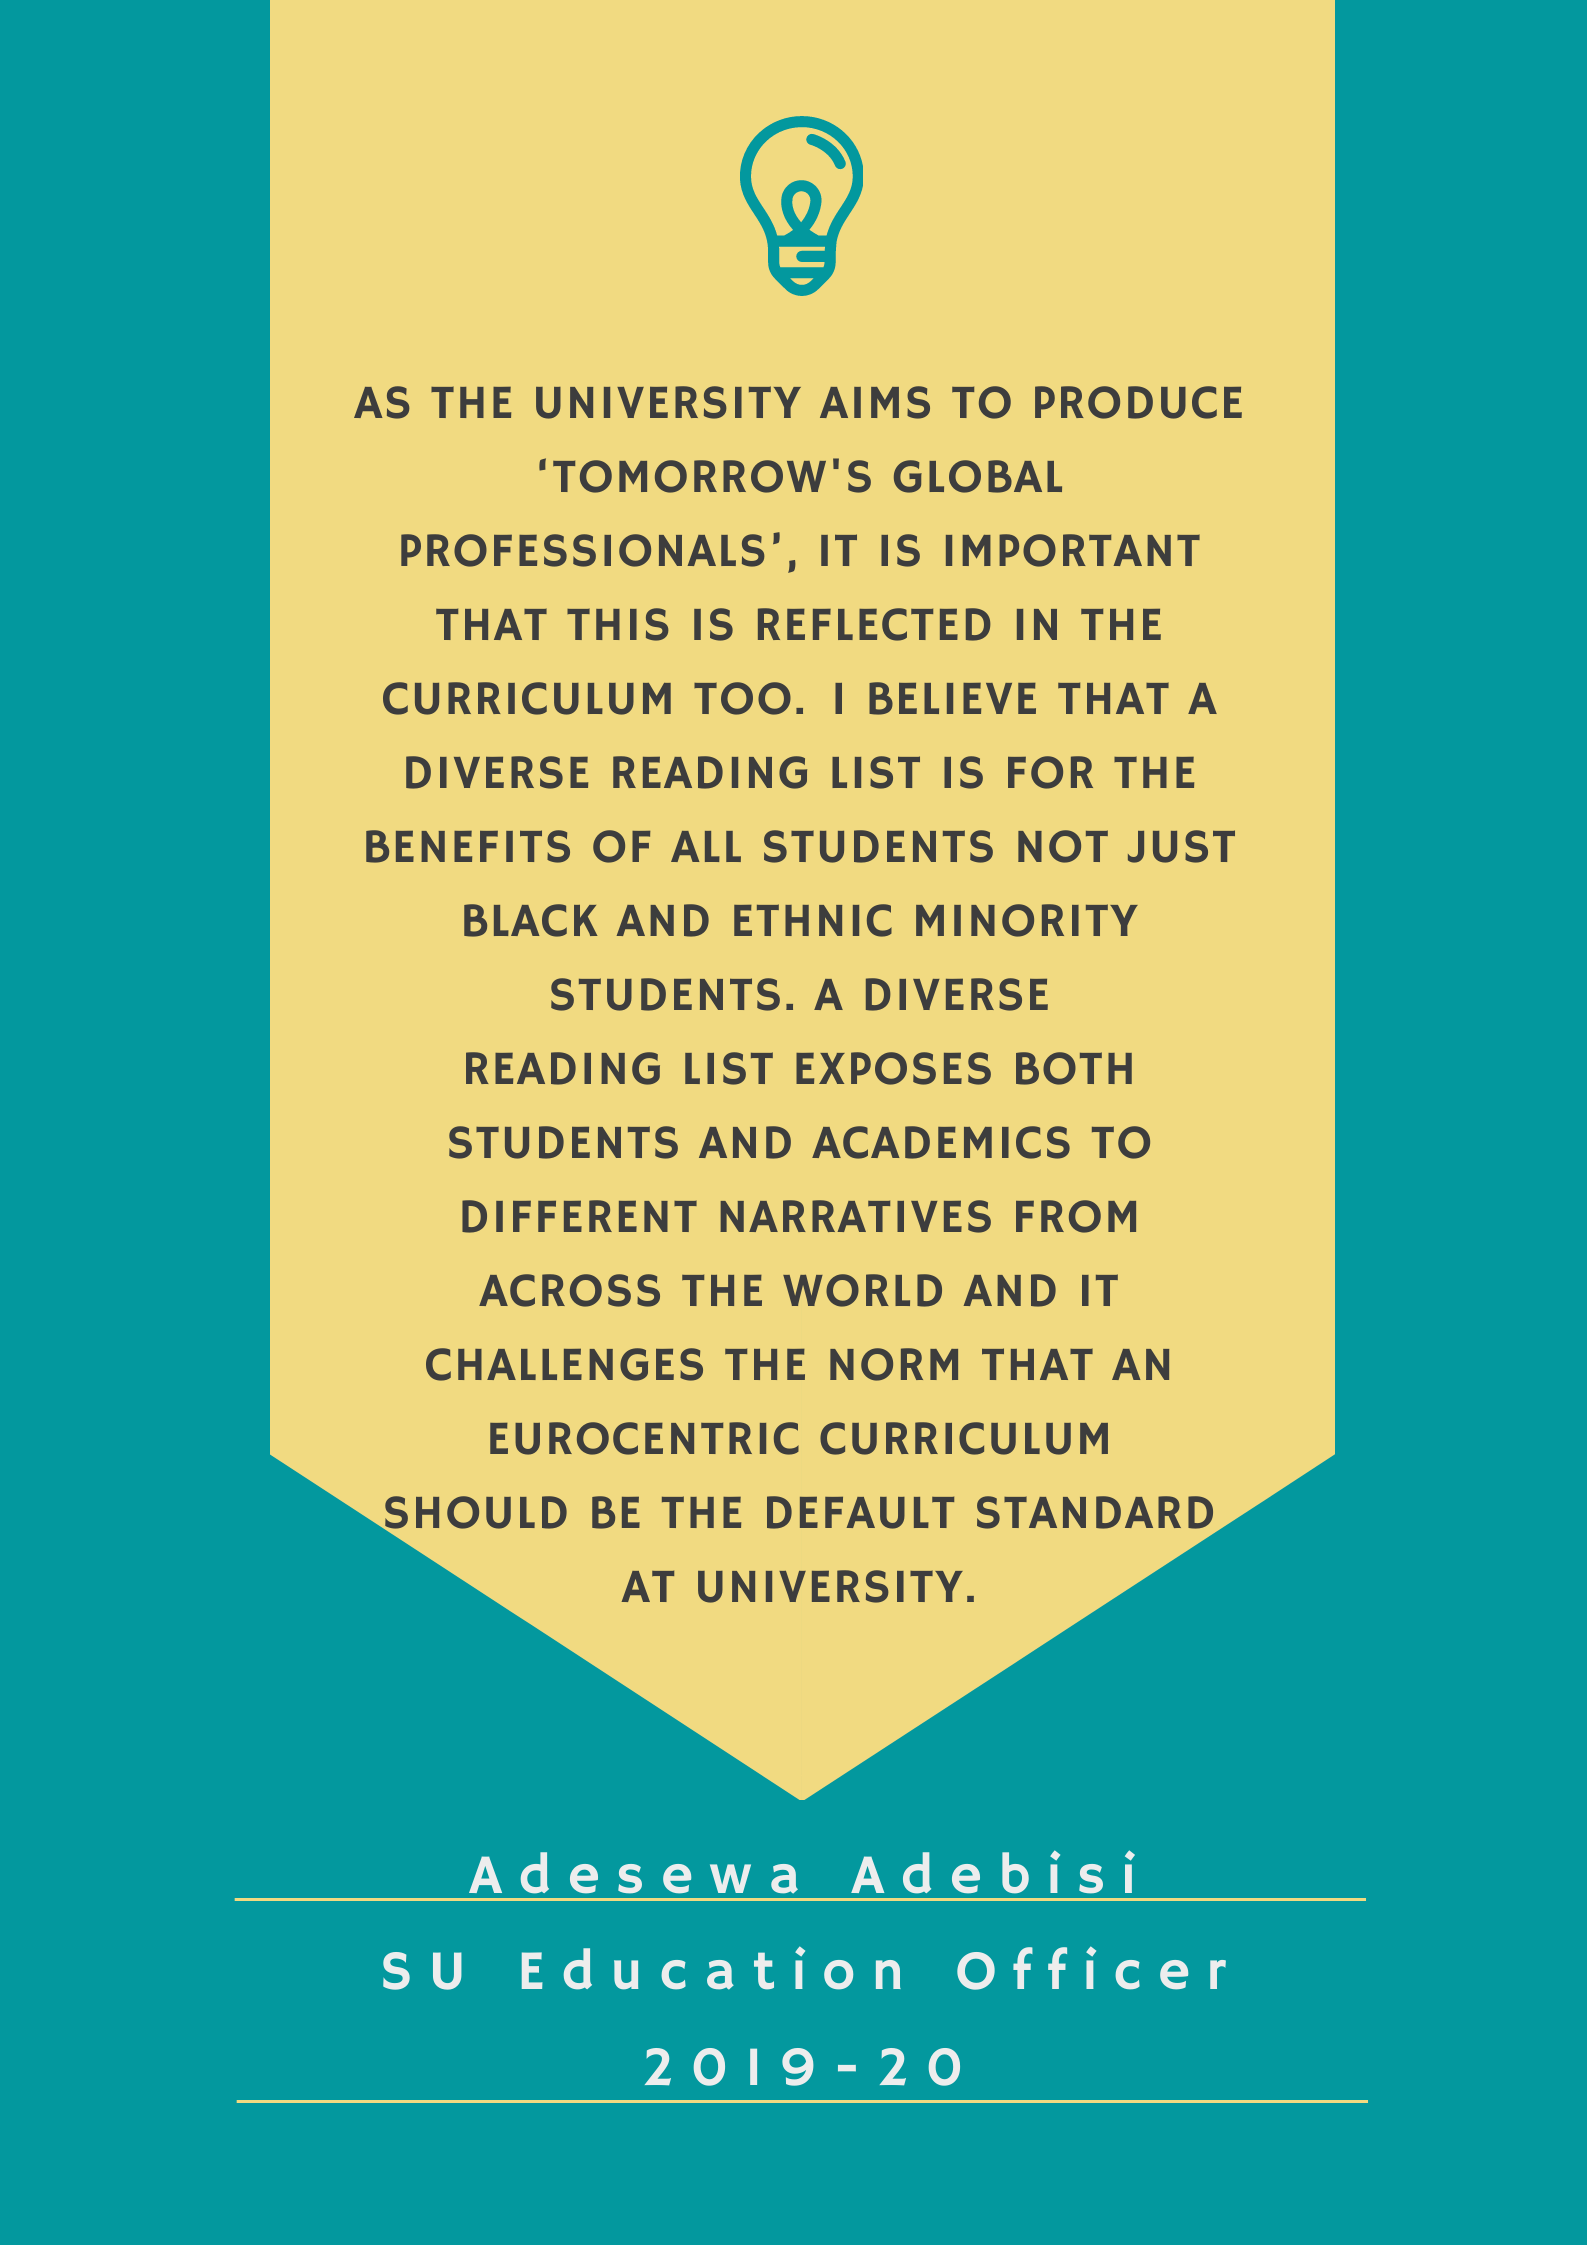 As the University aims to produce 'Tomorrow Global Professionals', it is important that this is reflected in the curriculum too.  I believe that a diverse reading list is for the benefits of all students not just black and ethnic minority students. A diverse reading lists exposes both students and academics to different narratives from across the world and it challenges the norm that an Eurocentric curriculum should be the default standard at University